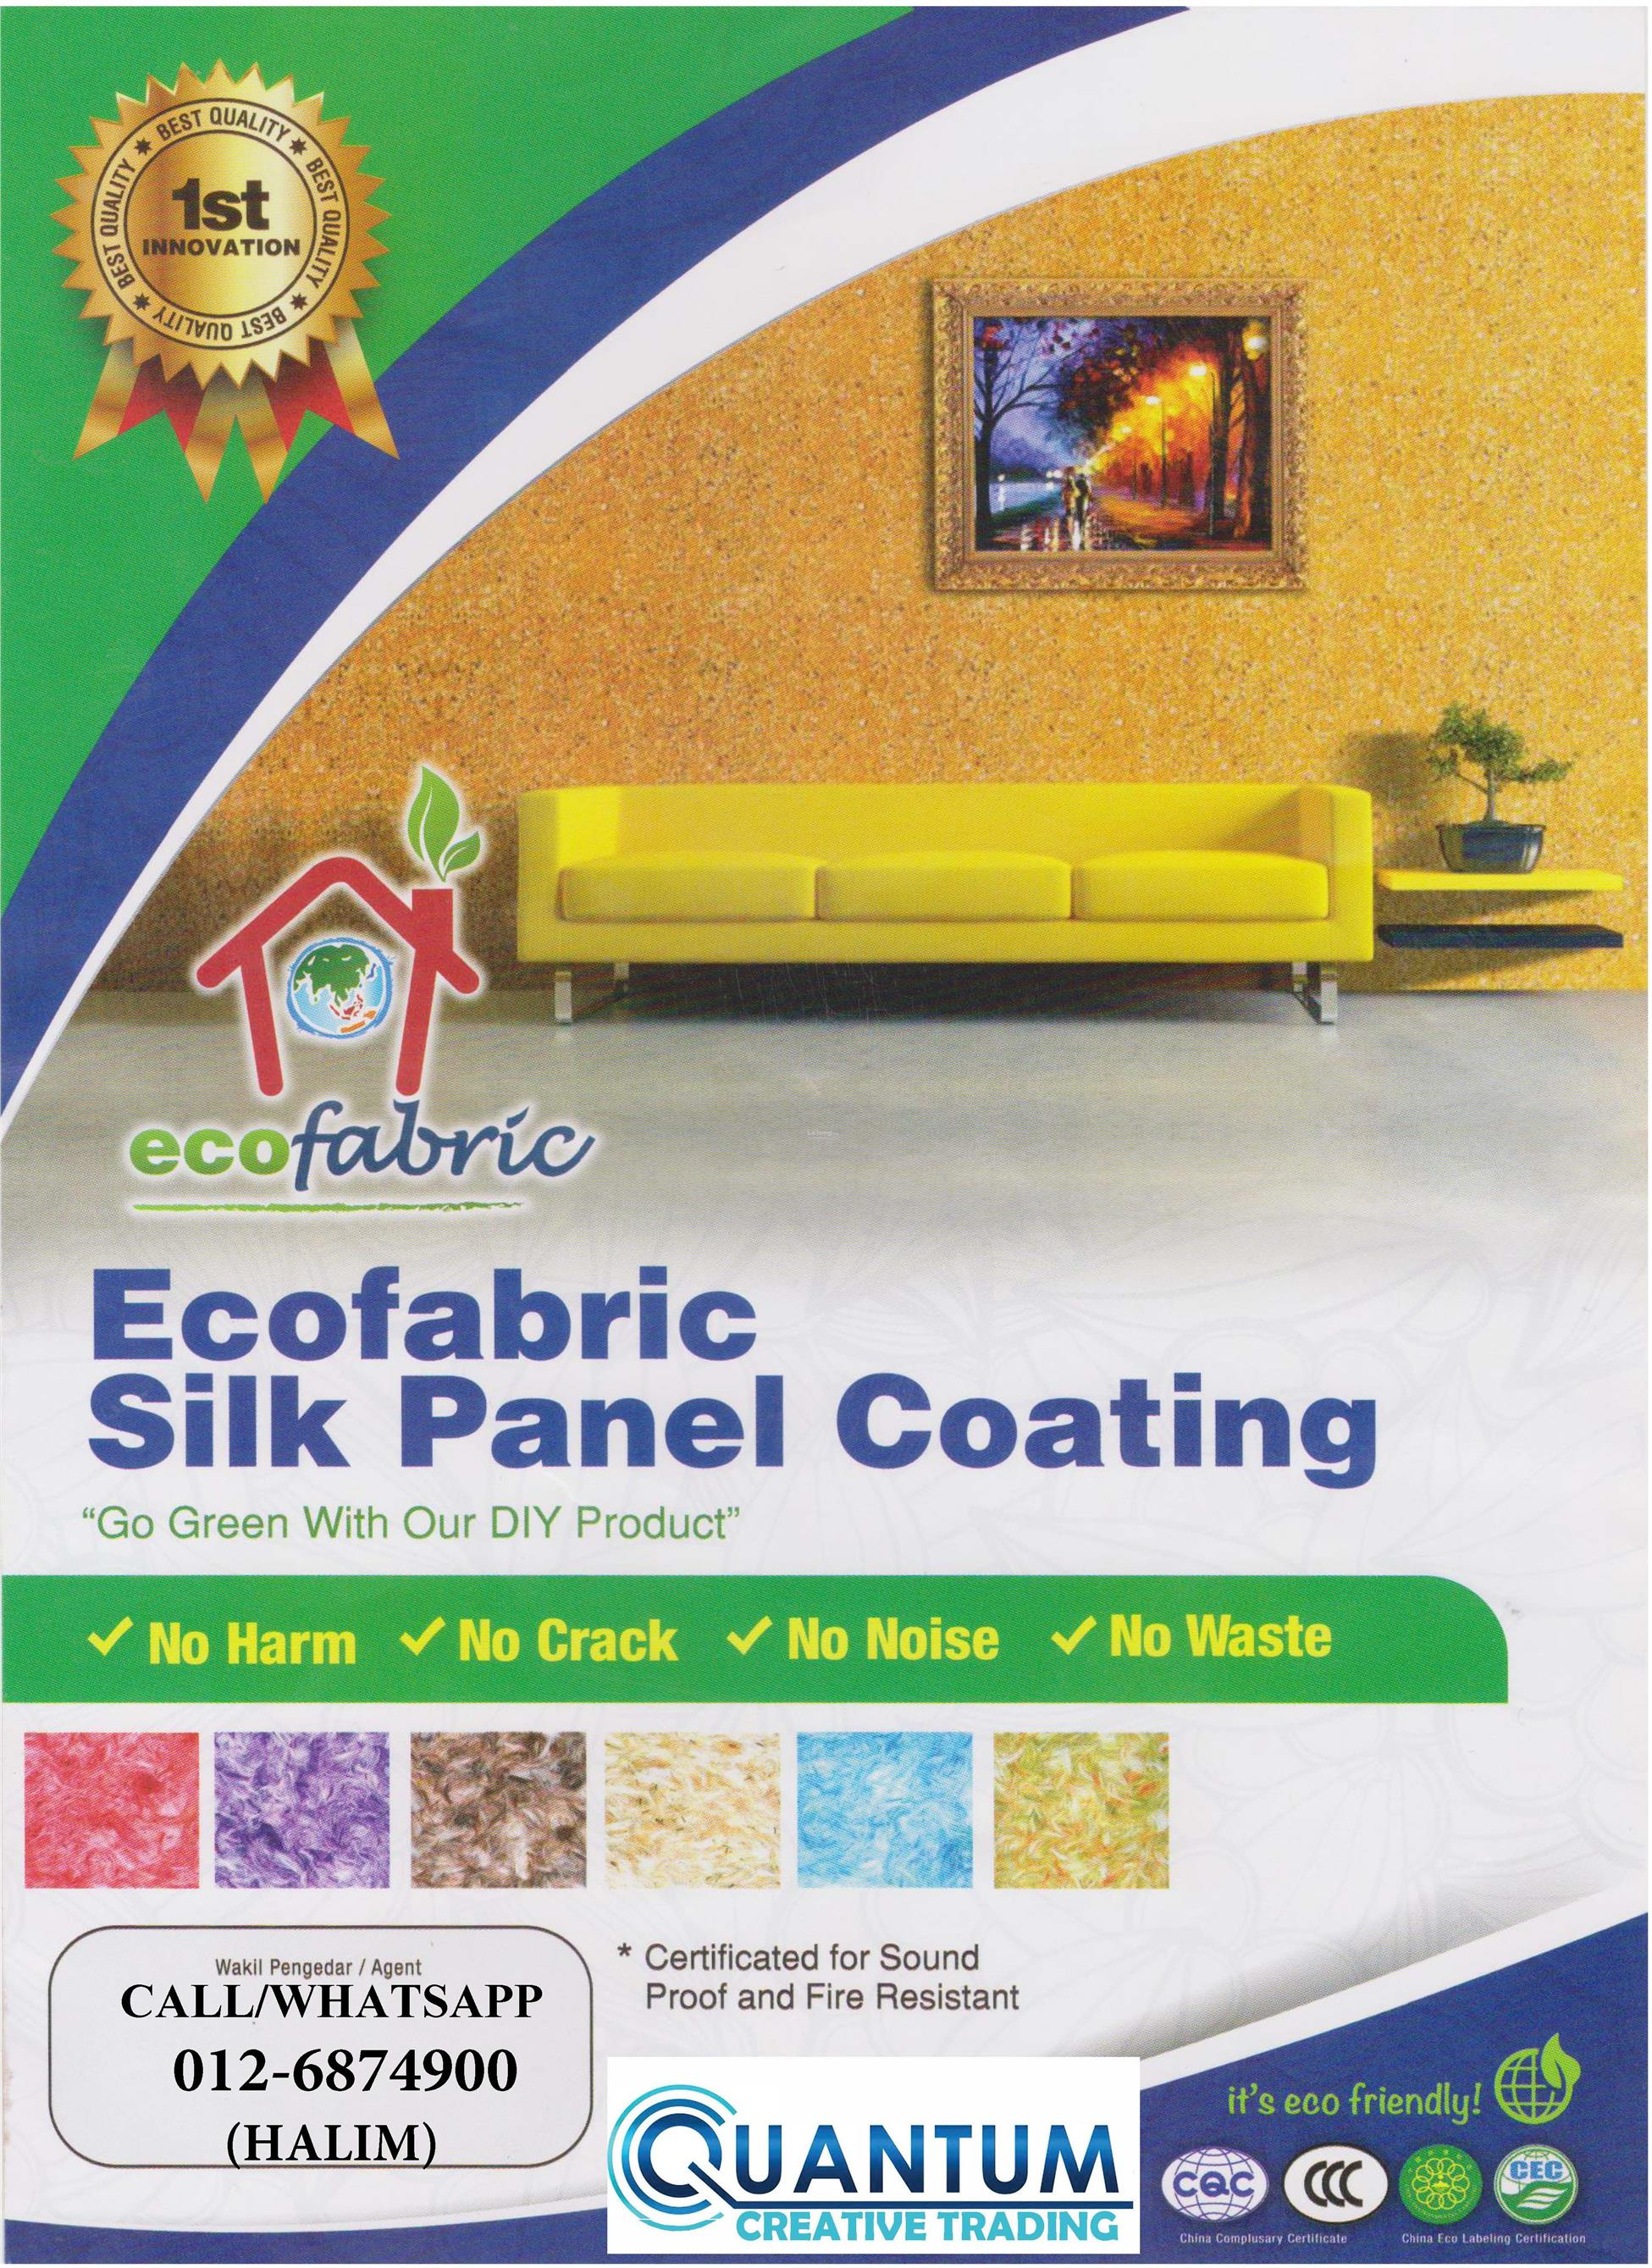 Silk Panel Coating - Ecofabric